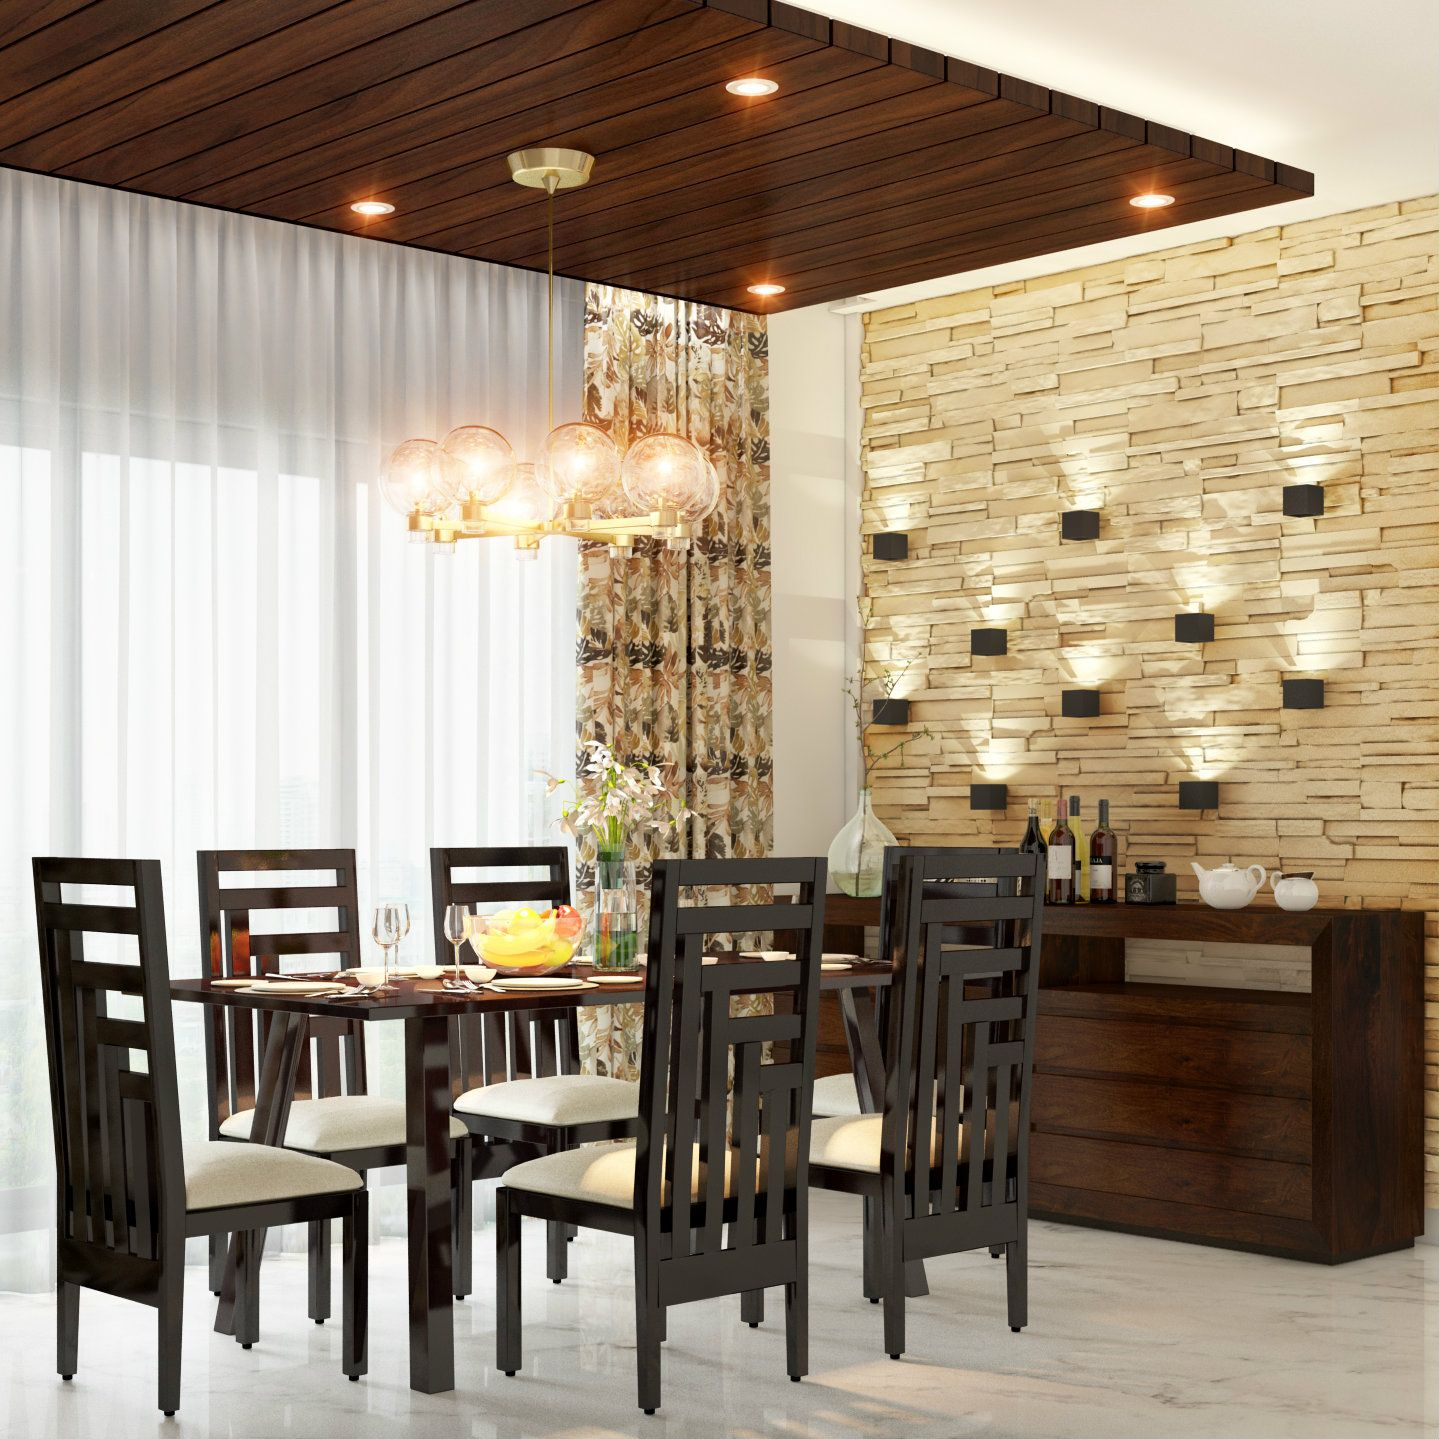 upscale dining room furniture. An Upscale Dining Room With Pretty Wall Scones. Accent Lights, False Ceiling, Cladding Furniture